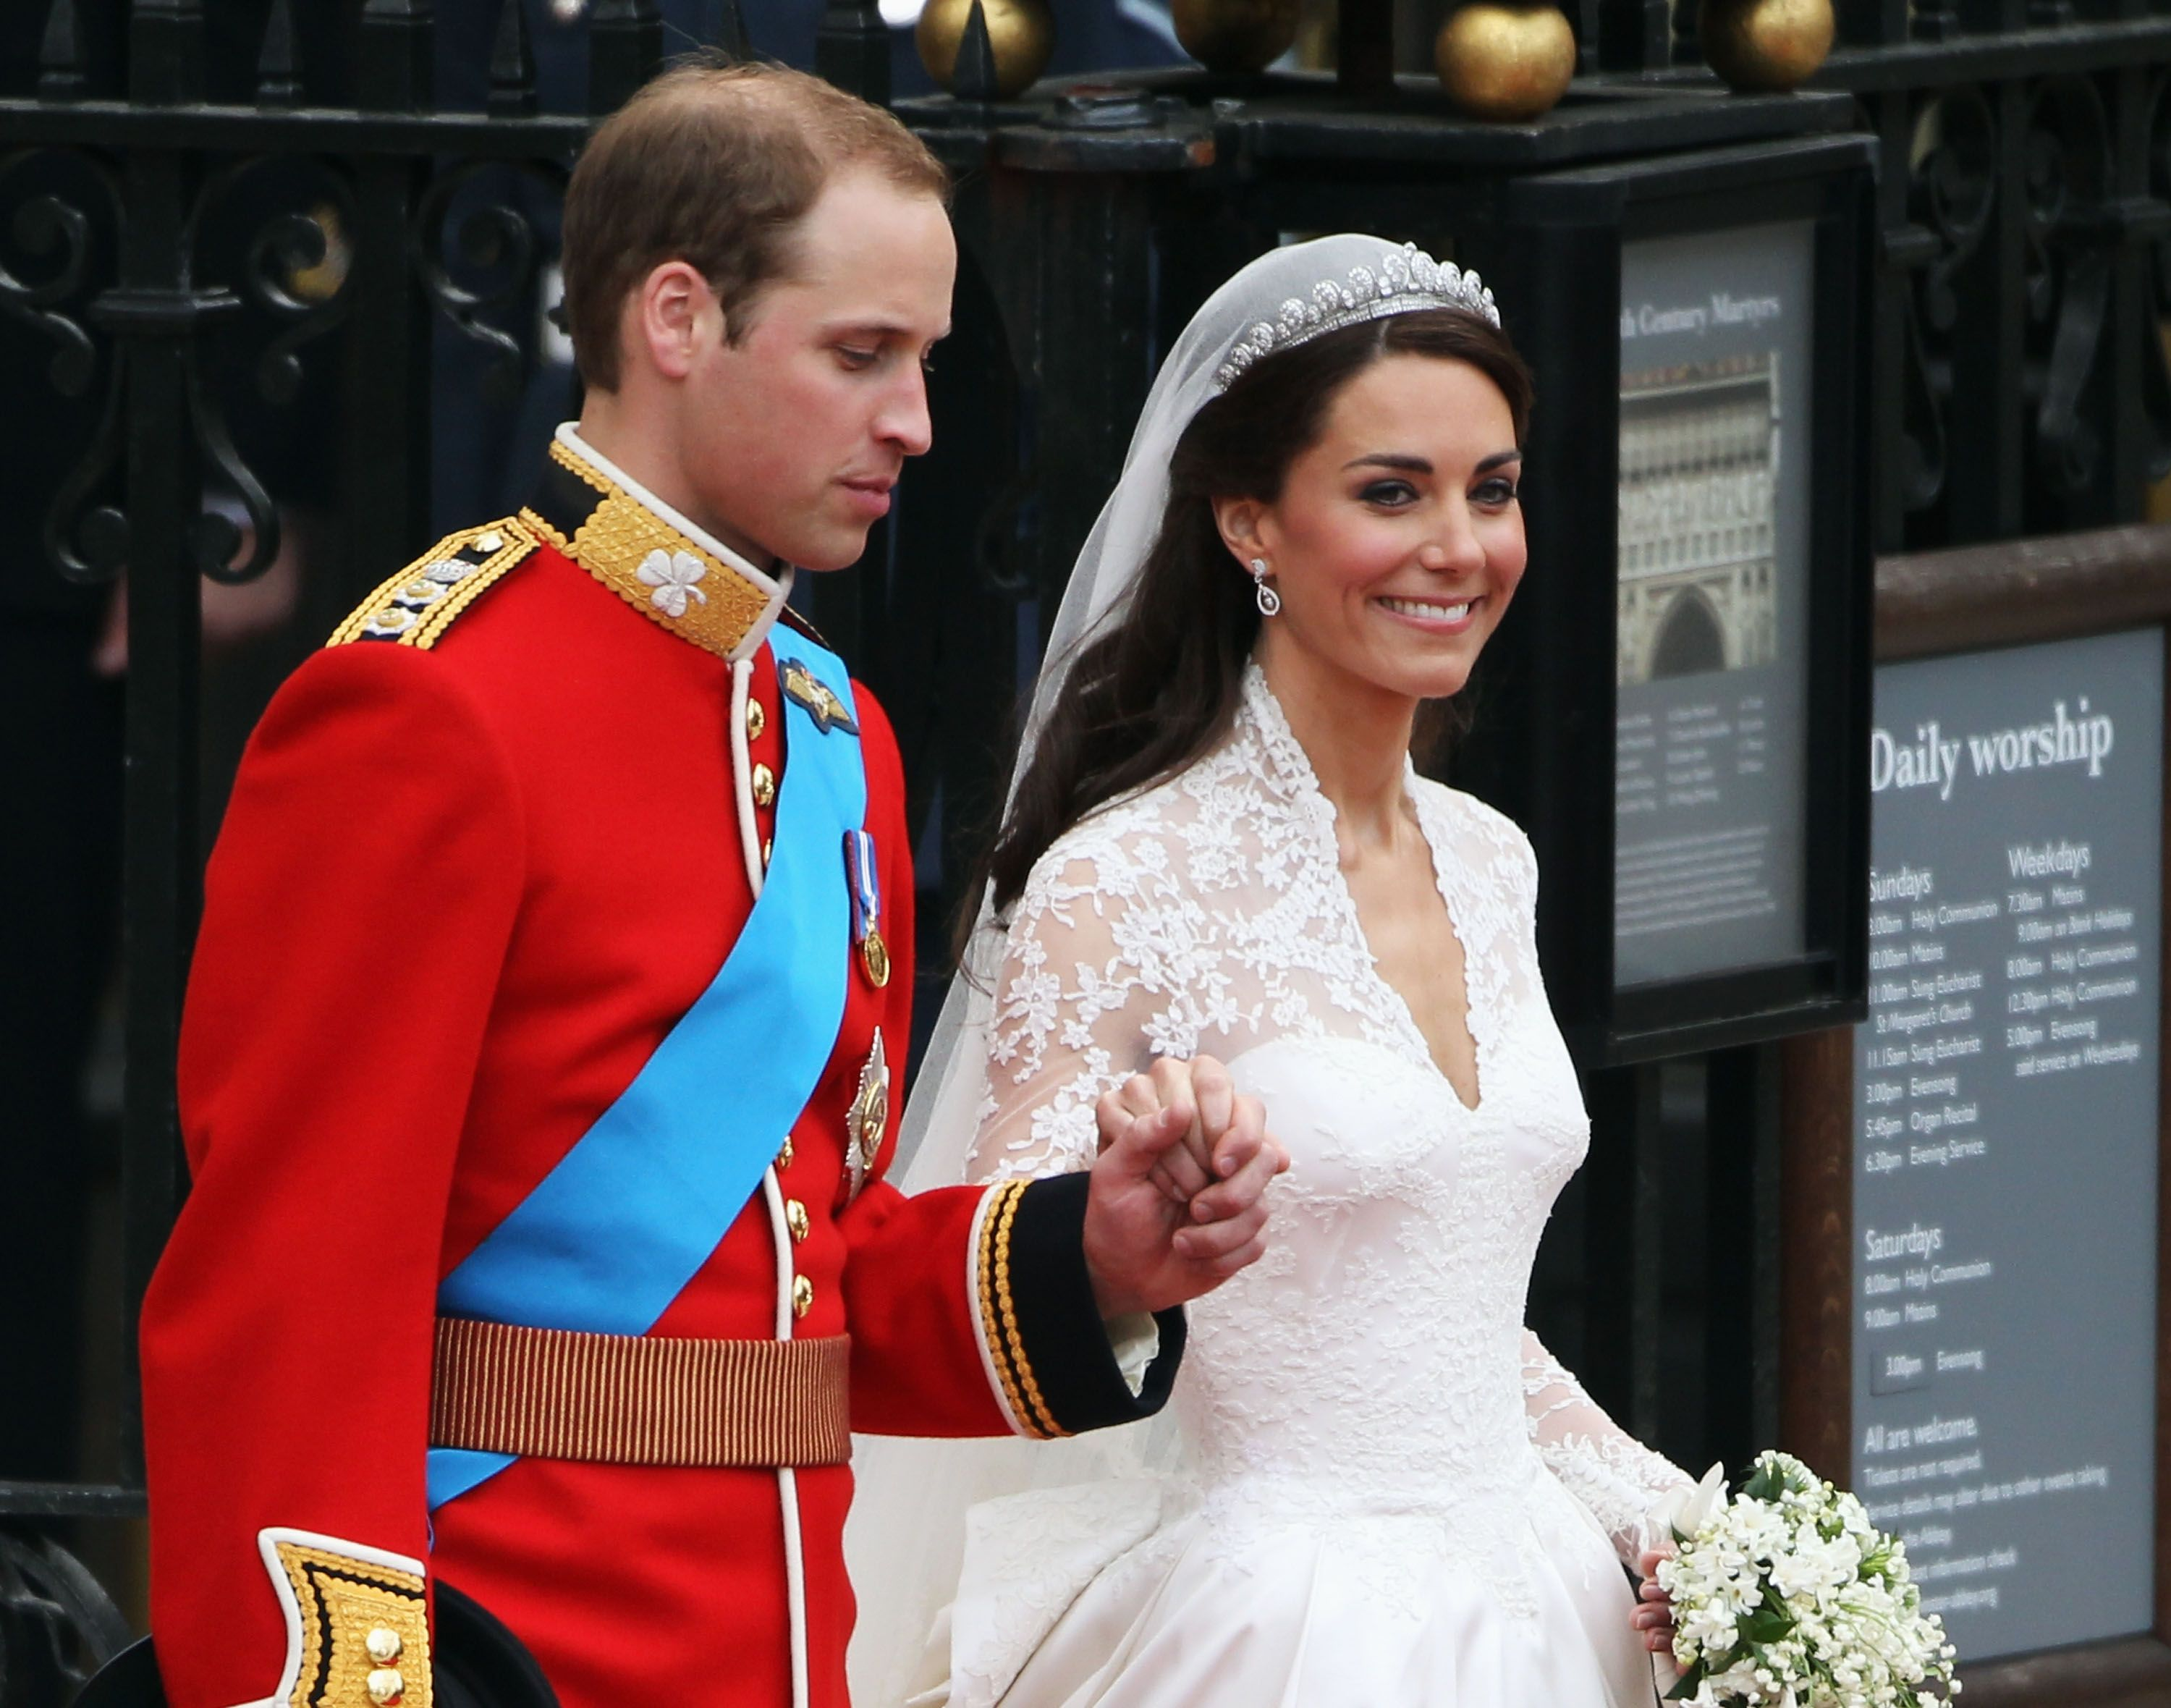 Prince William and Catherine Duchess of Cambridge on their wedding day, April 29, 2011 in London, England   Source: Getty Images